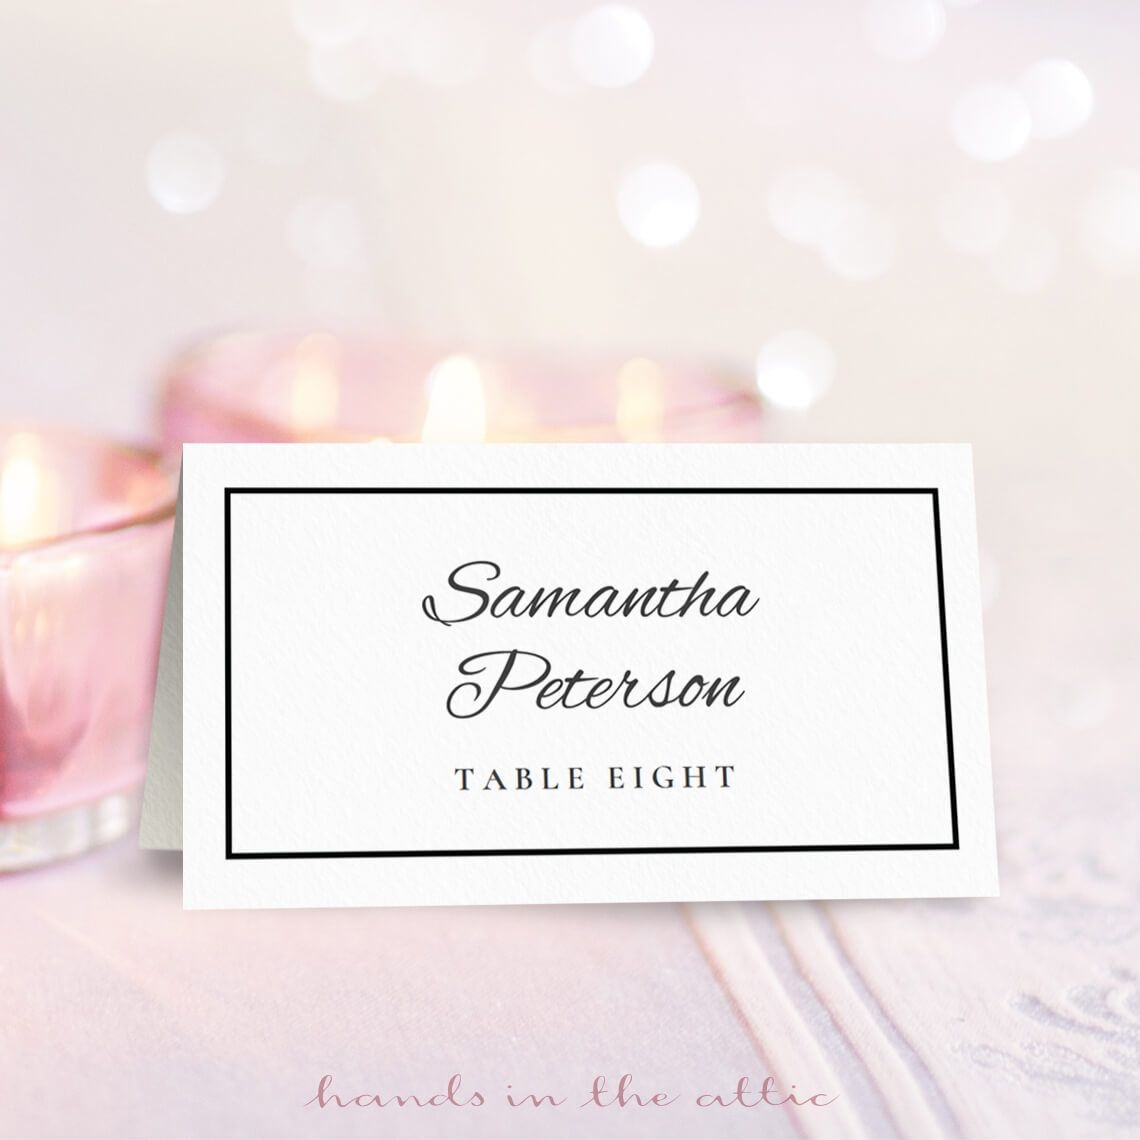 Wedding Place Card Template | Free On Handsintheattic | Free - Free Printable Damask Place Cards